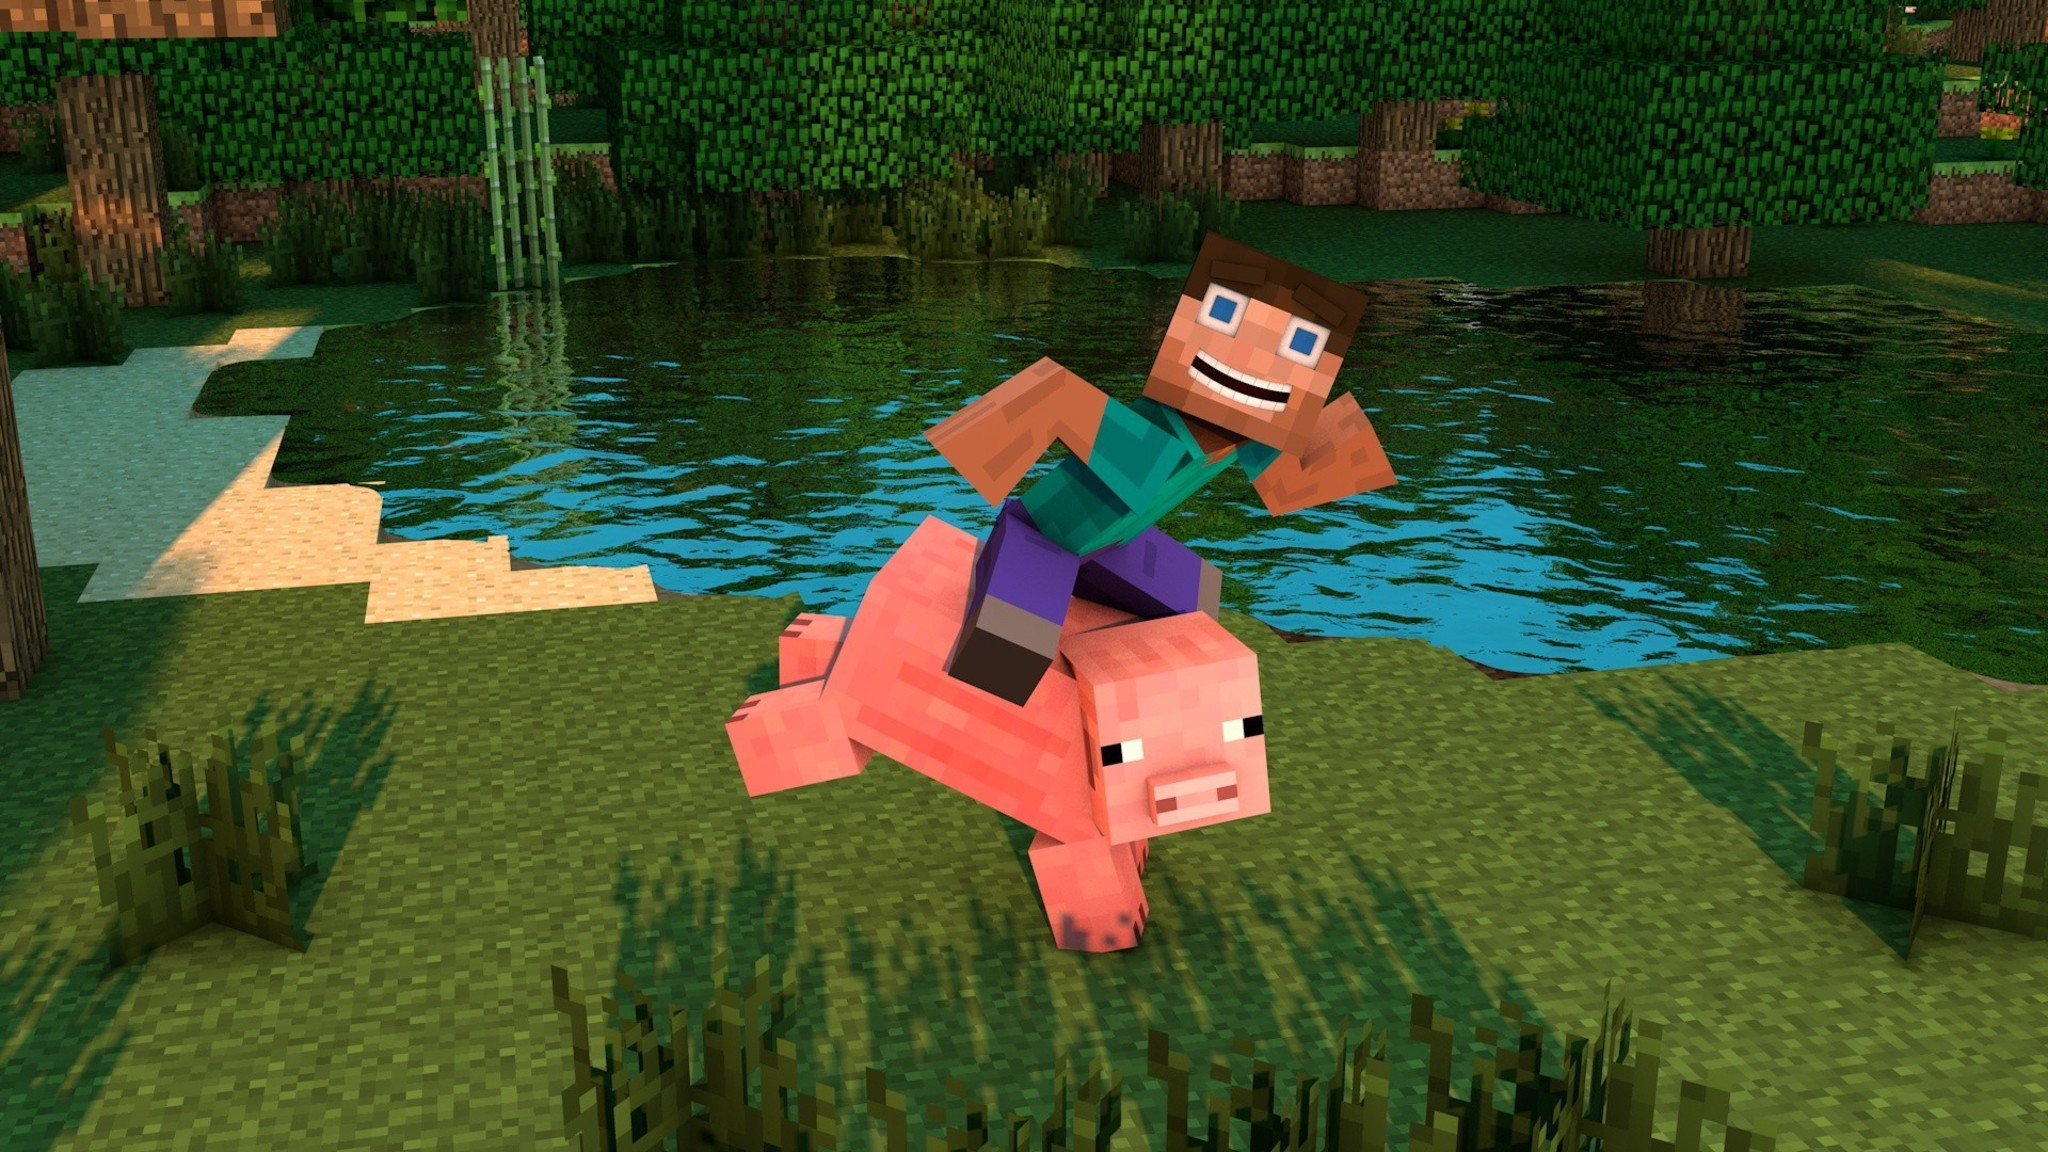 I Want To Download Cute Wallpapers Minecraft Pig Ride Wallpaper Allwallpaper In 6660 Pc En